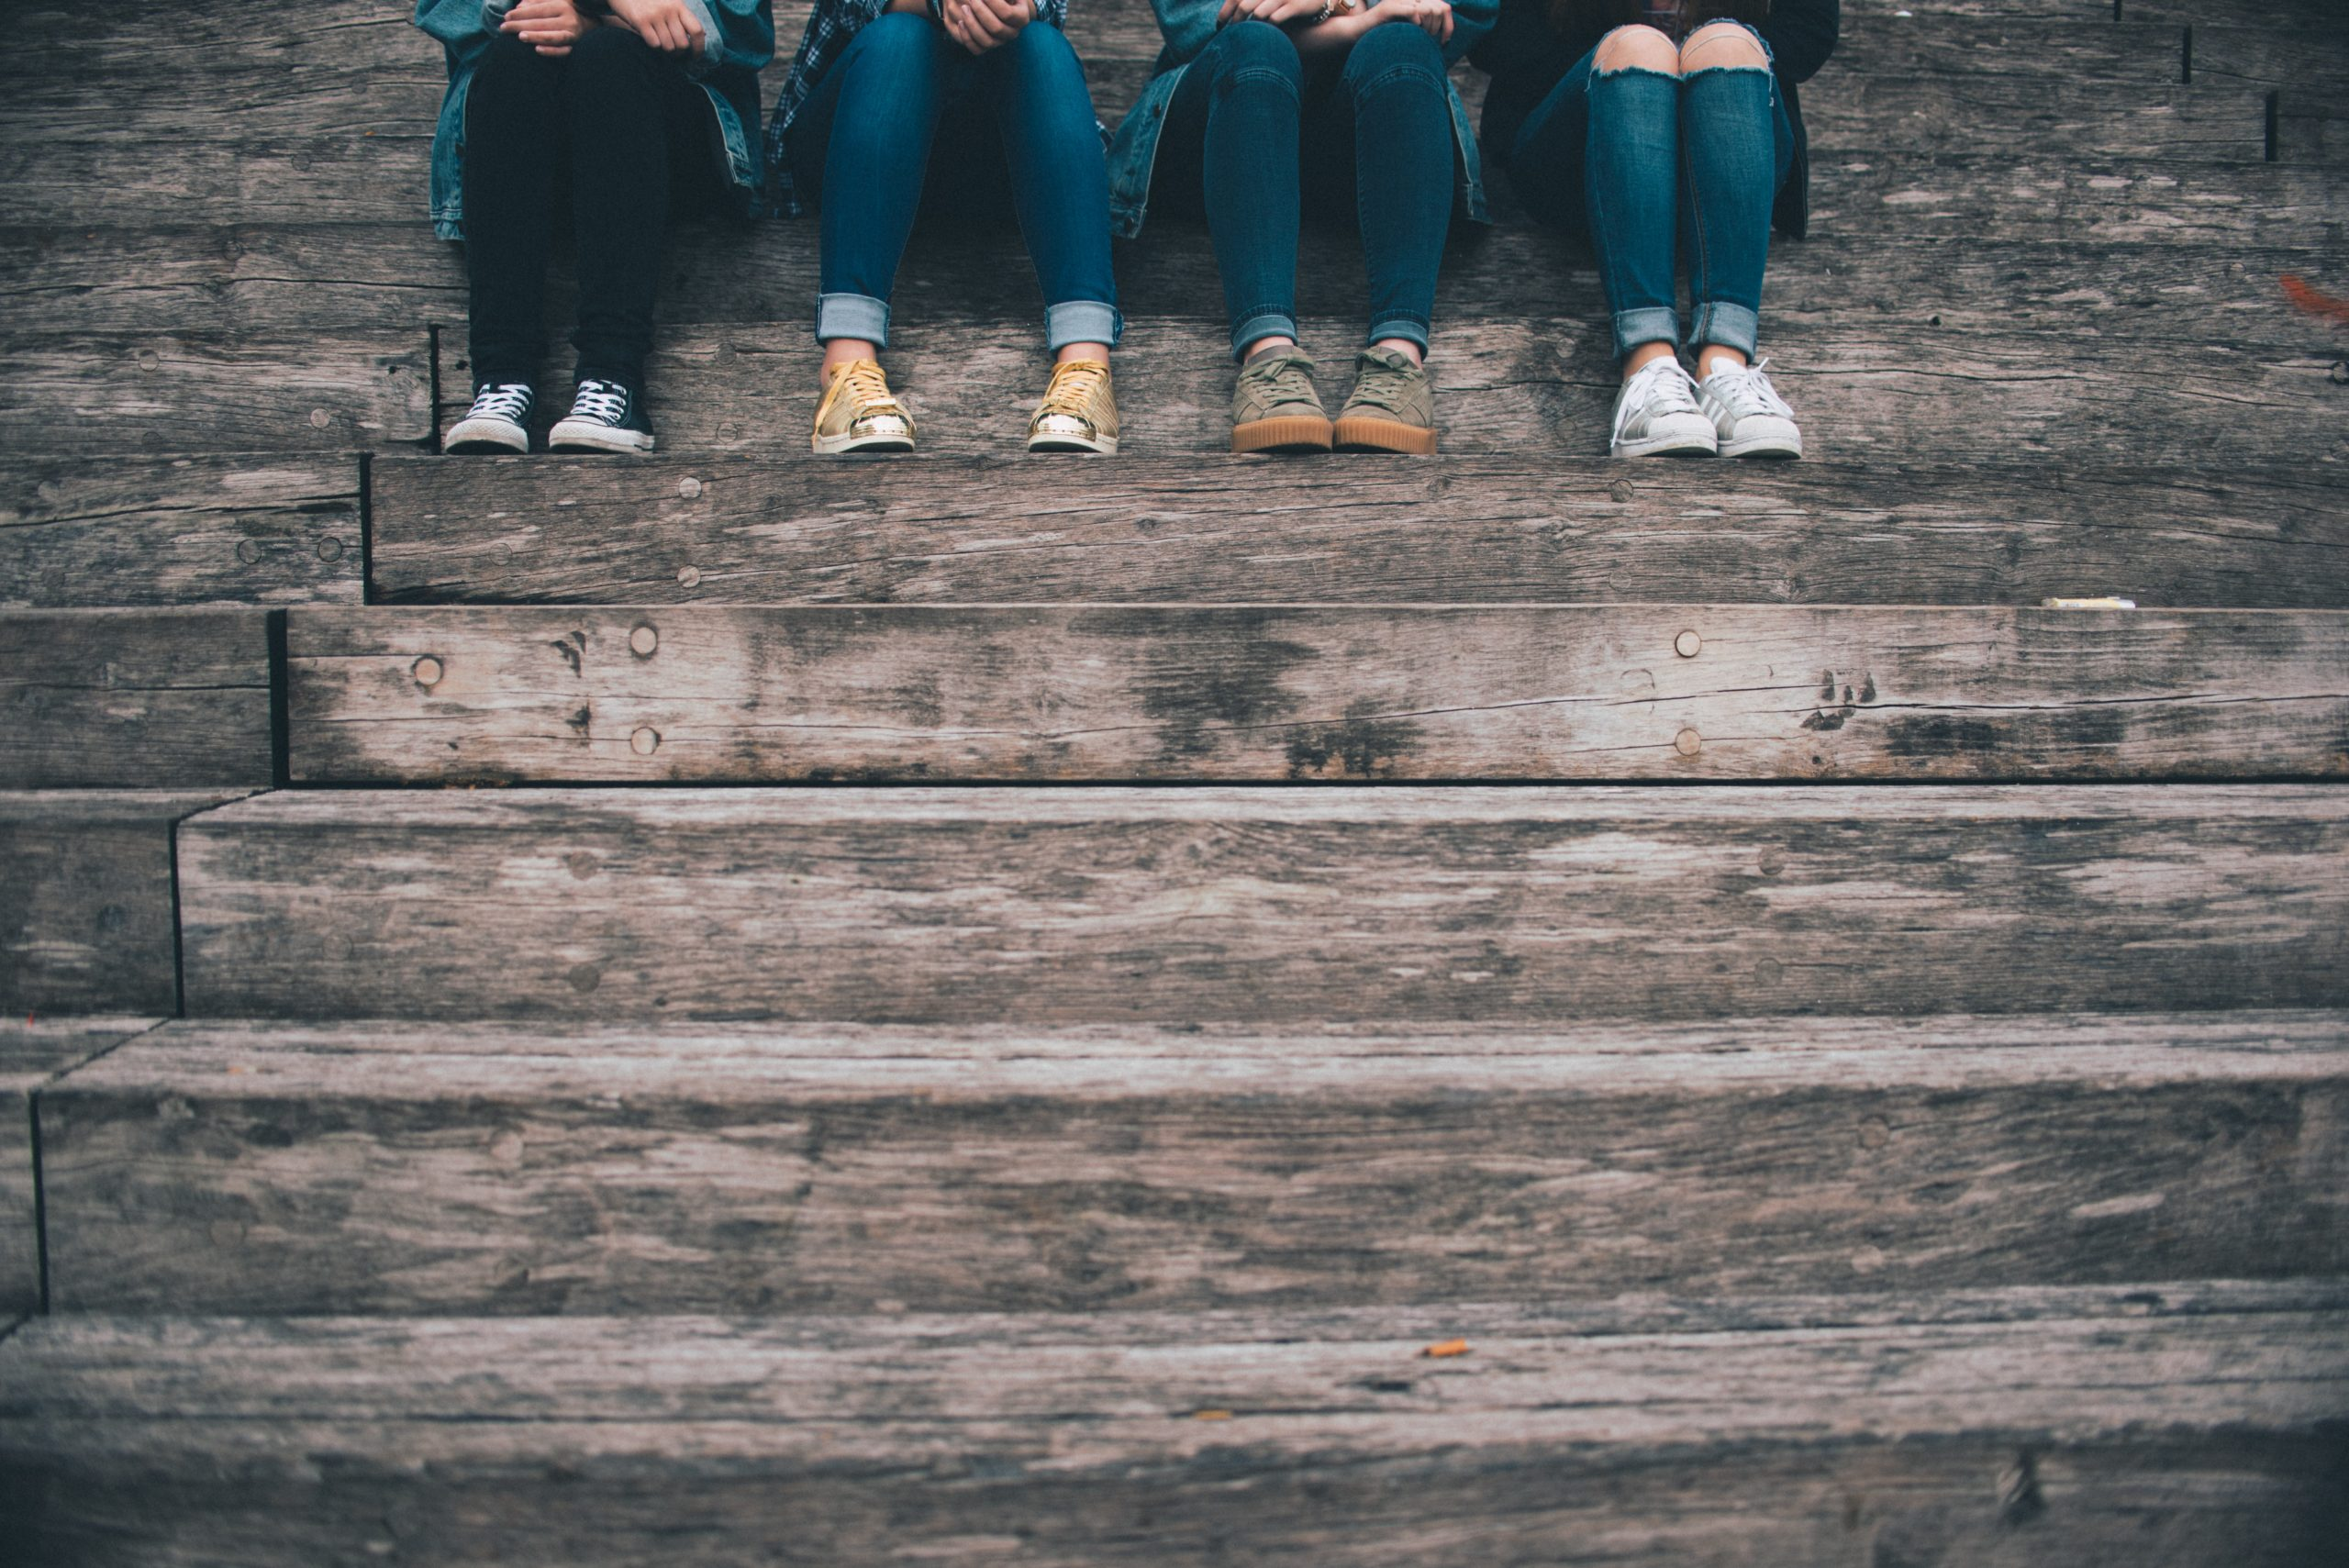 A photo of four girls of the tween years are sitting on a step, with just their legs showing from the knee down. They represent some of the influences on body image at that age.